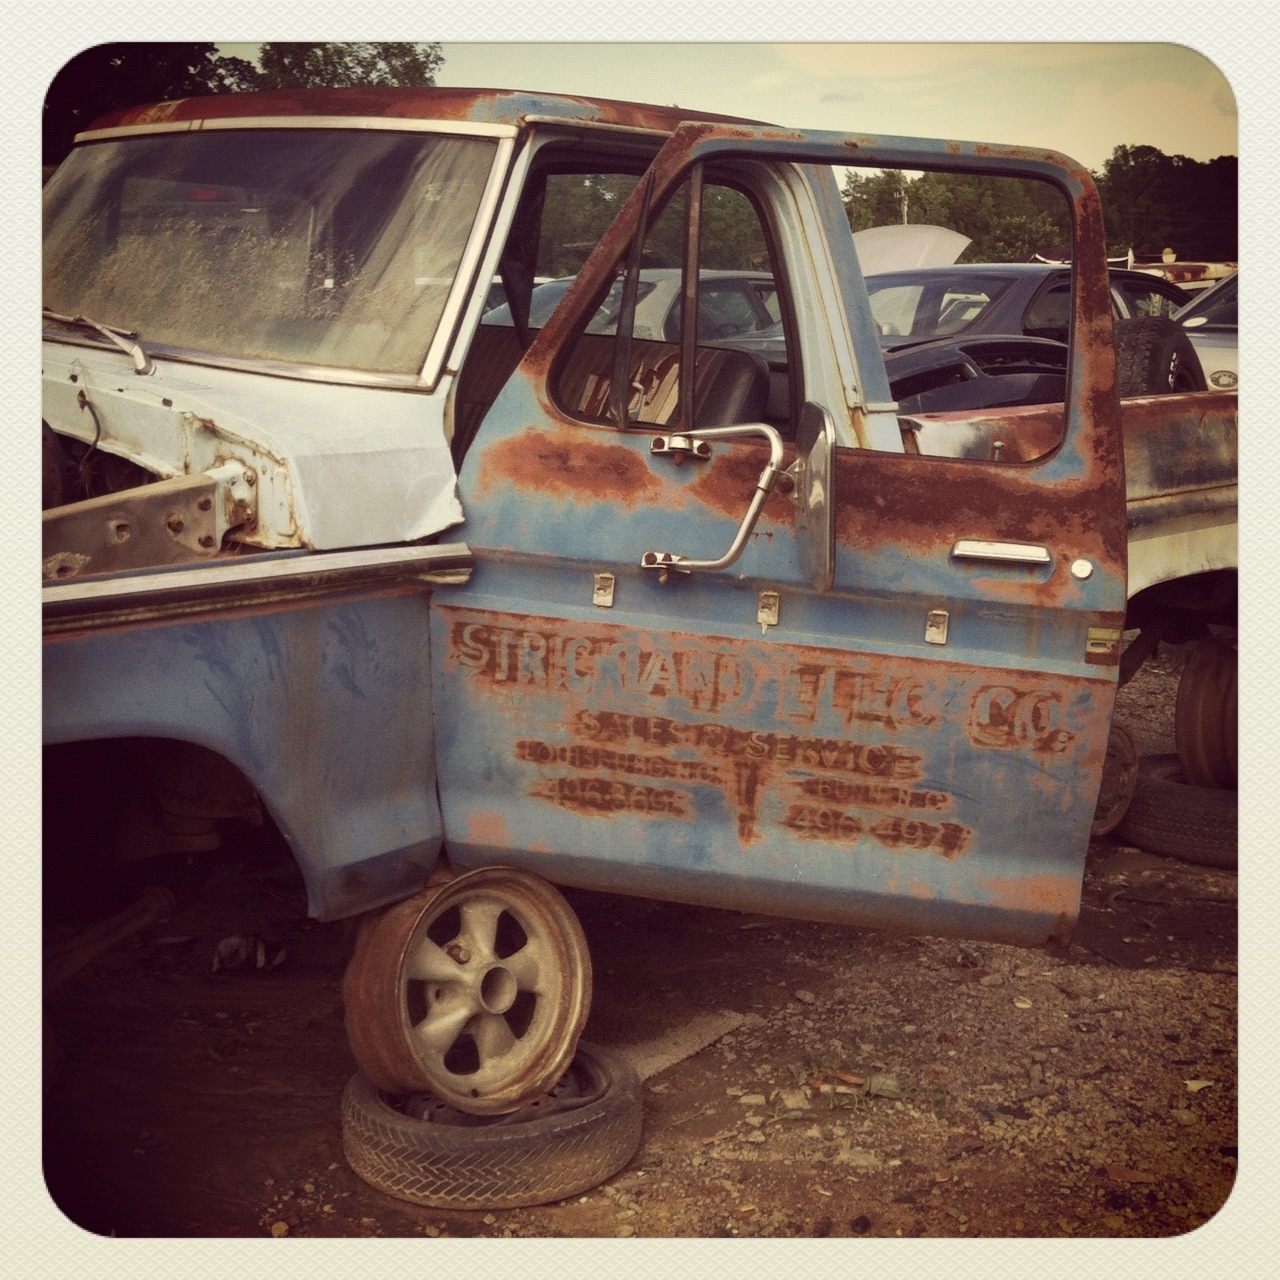 20120601 120949 I Heart Instagram & The Junkyard